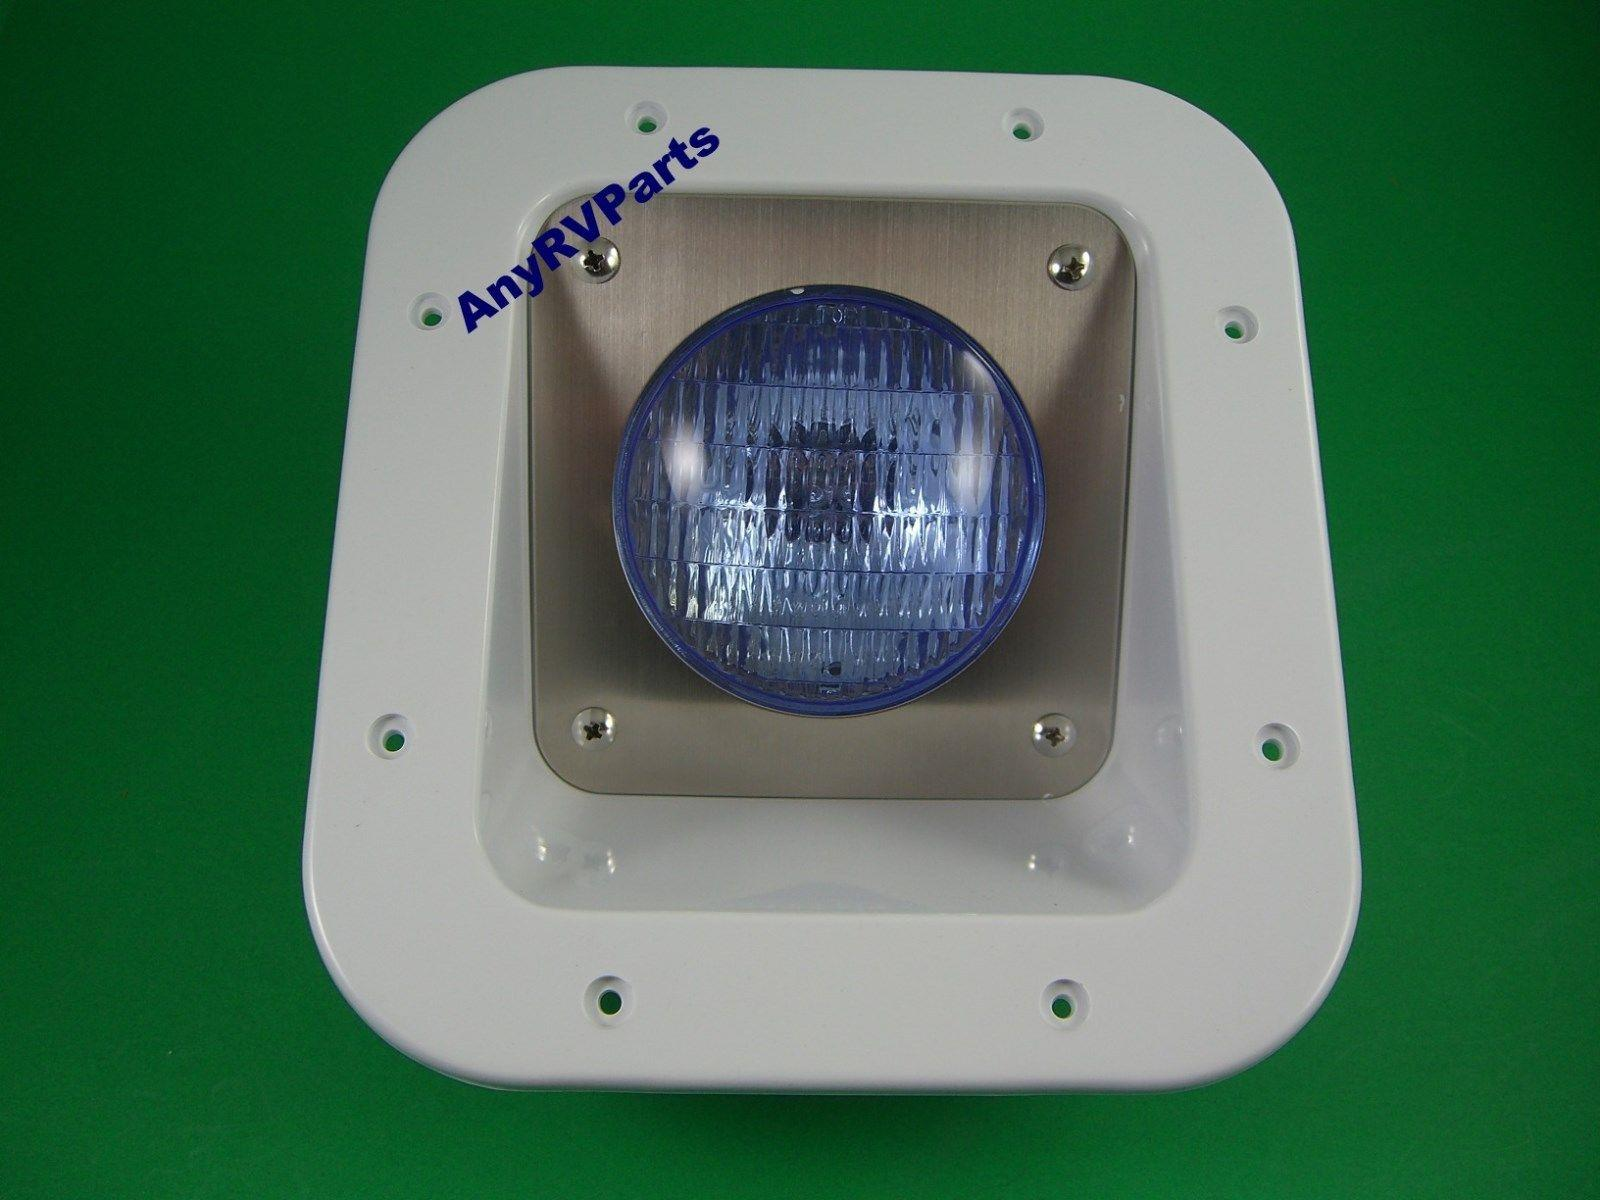 Superior Has Anyone Replaced Their Exterior Flood Lights With LED Bulbs? If So What  Bulbs Did You Use And Where Do You Get Them? This Is The Kind Of Light I Am  ...